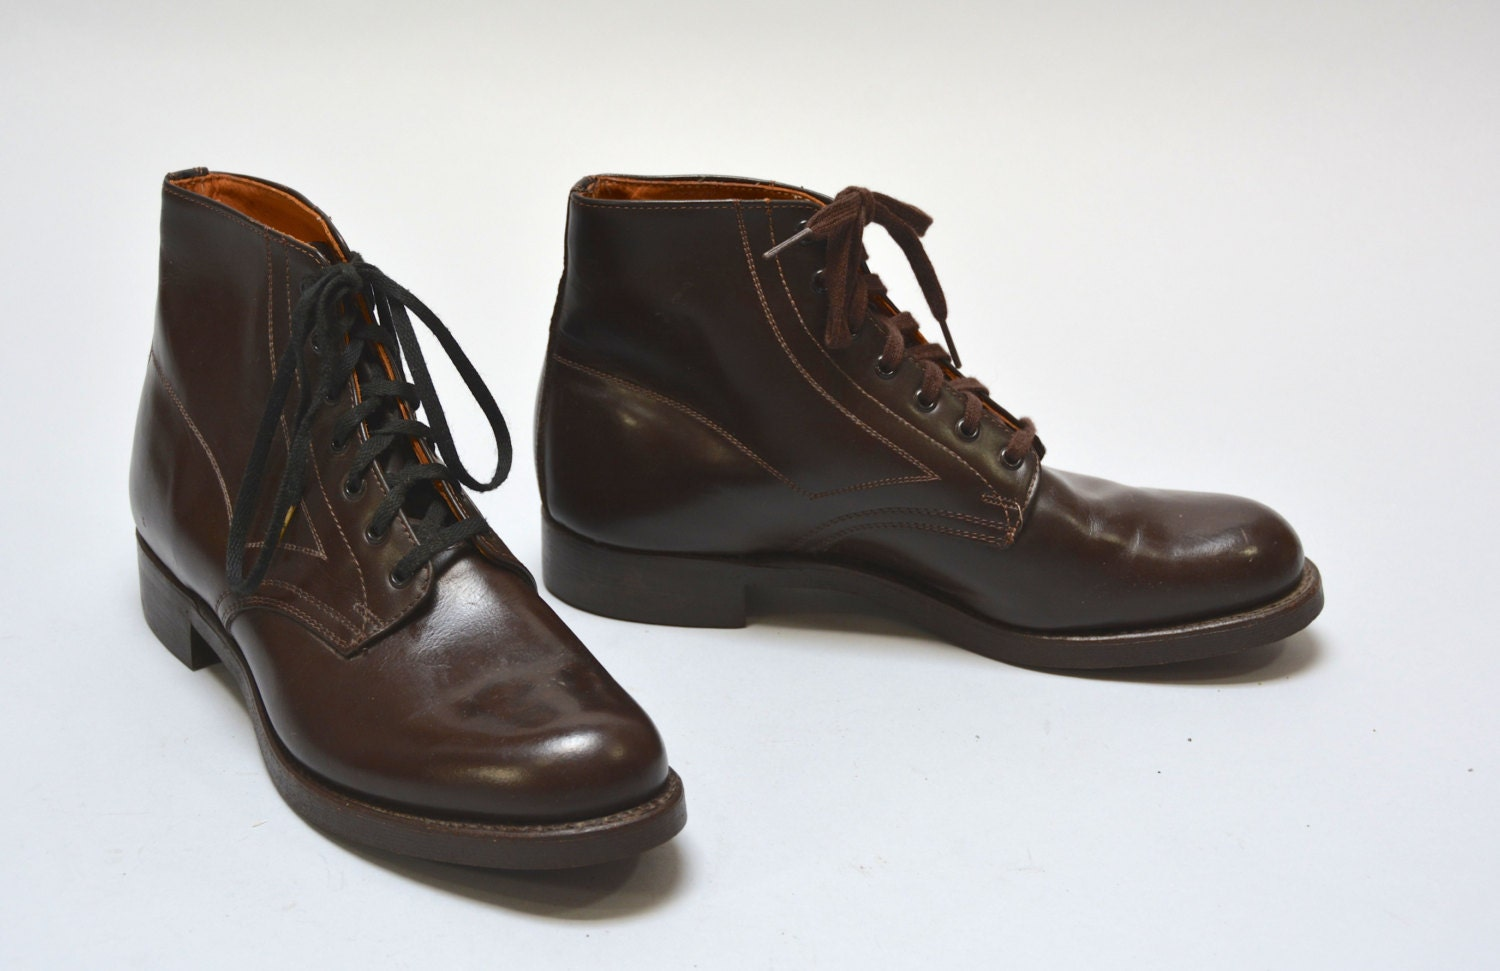 NOS 40s 50s Police Boots Deadstock Vintage Forties Fifties